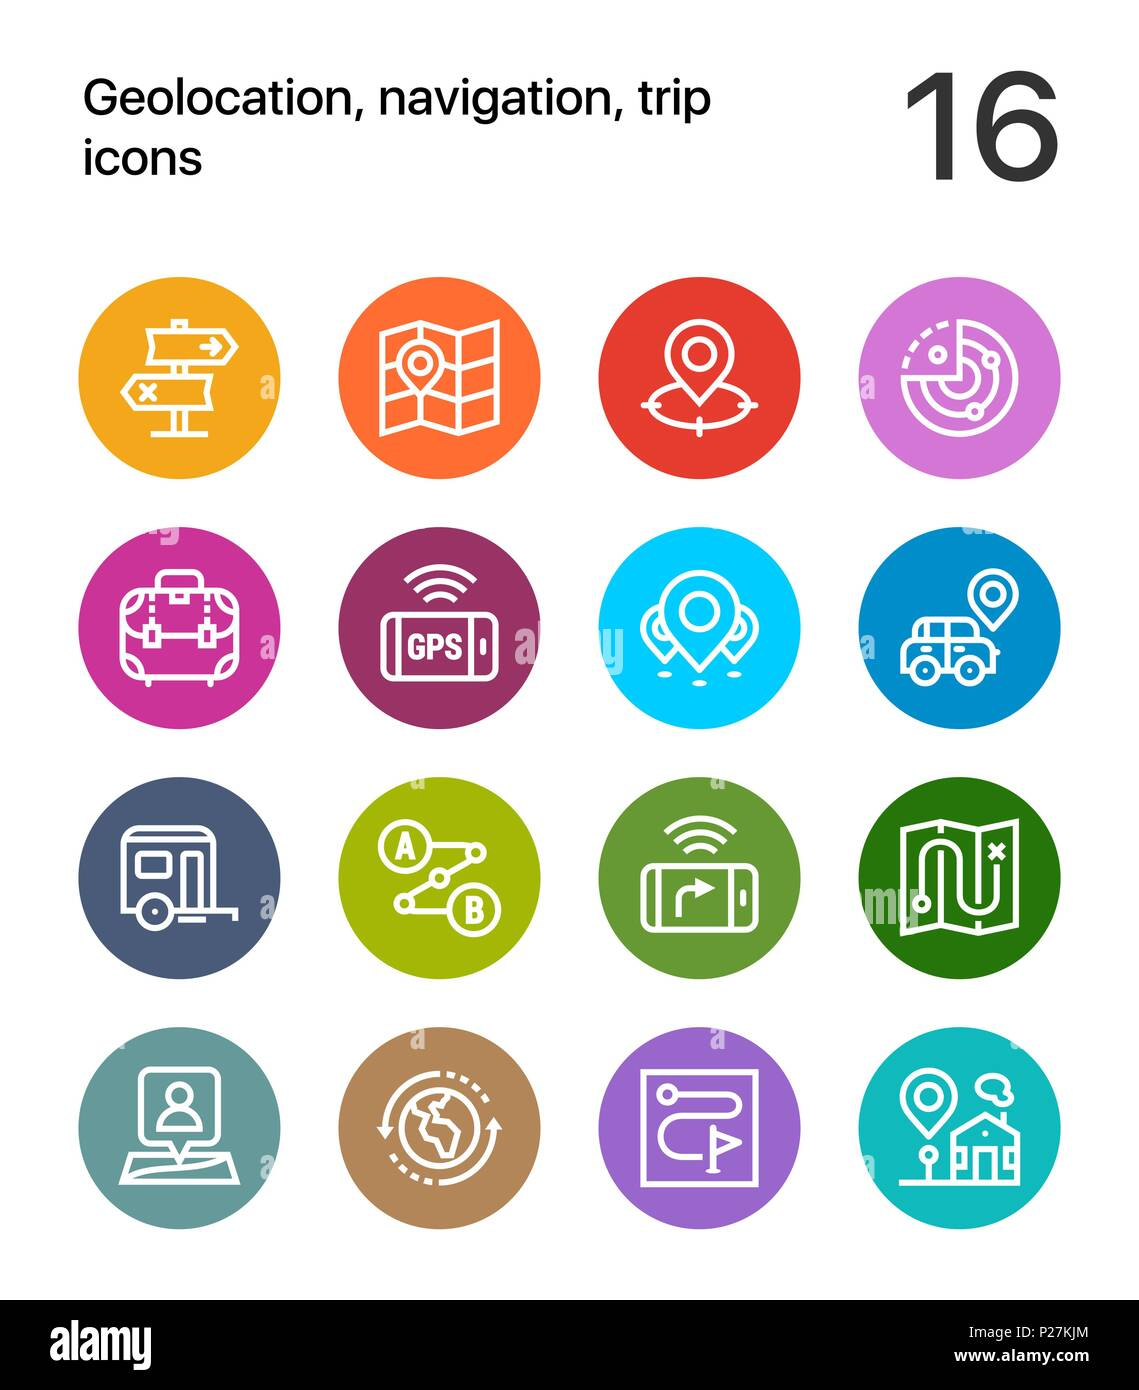 Colorful Geolocation, navigation, trip icons for web and mobile design pack 2 - Stock Image